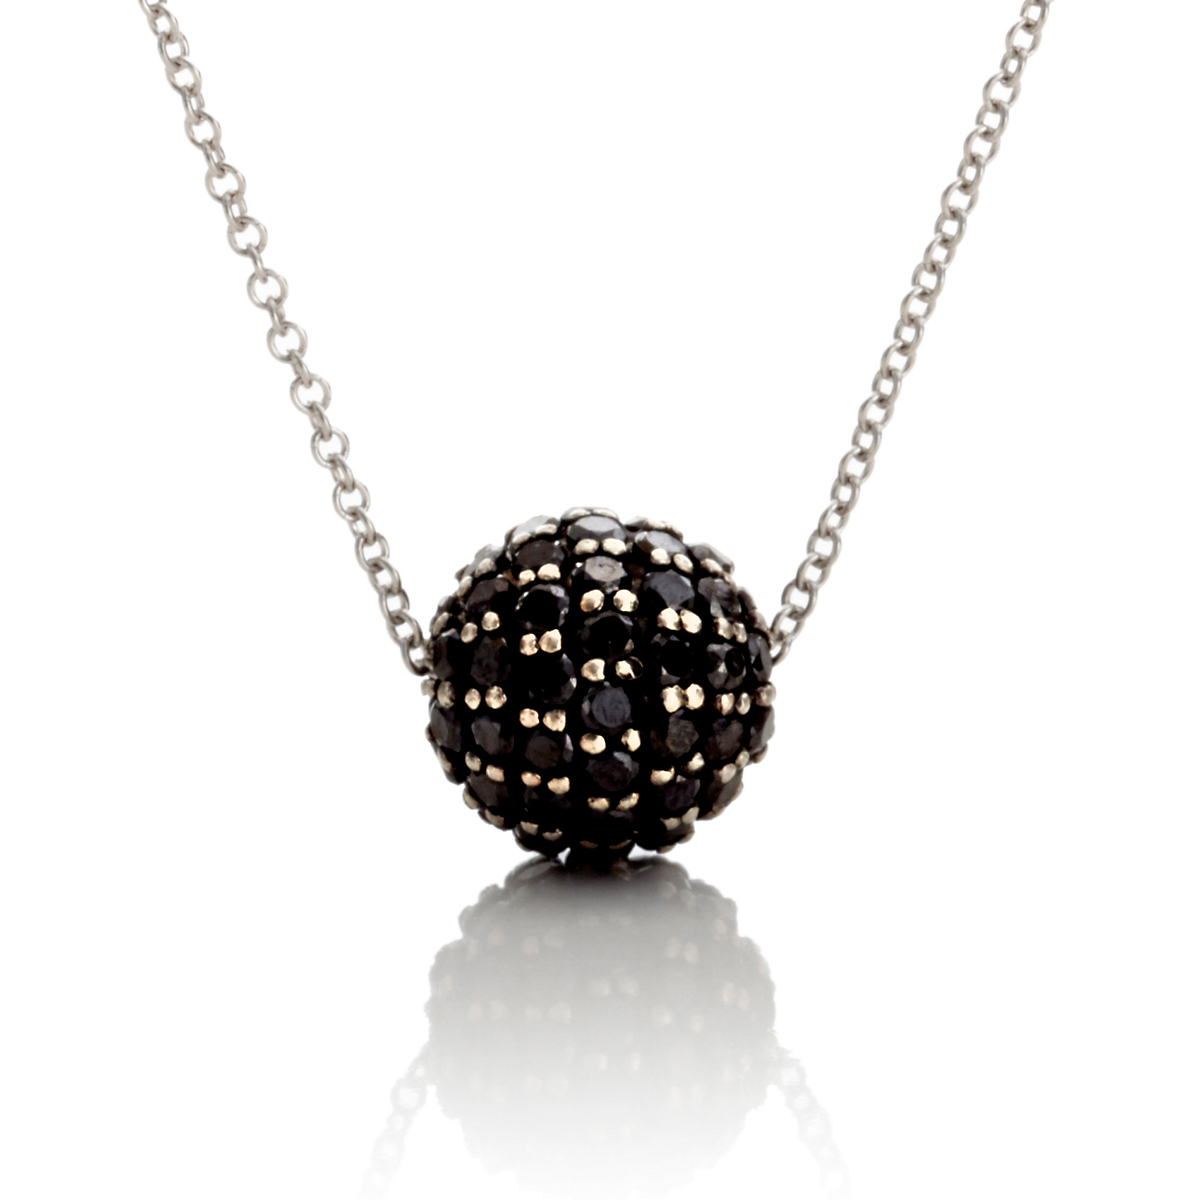 Gump's Black Diamond Bead & White Gold Necklace